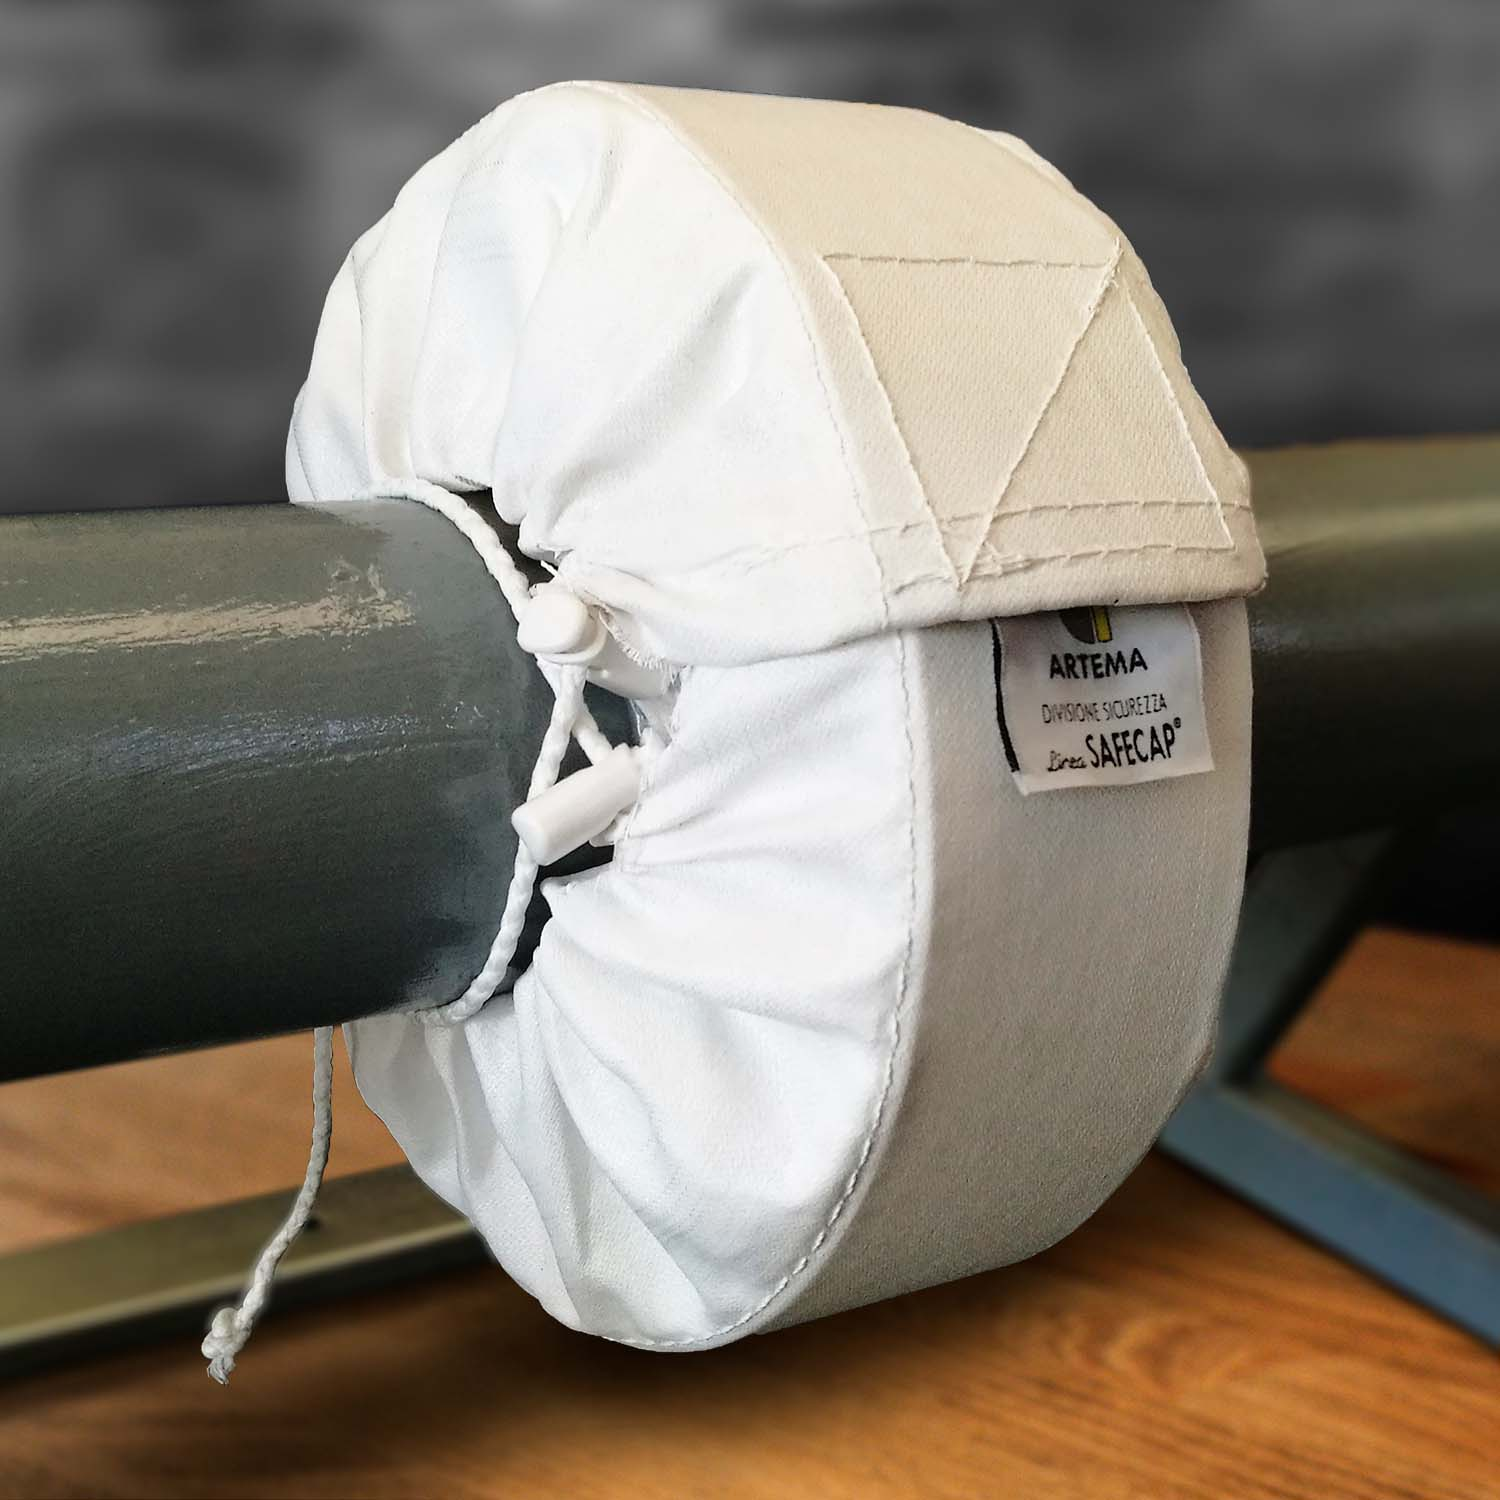 FLANGE COVER SAFECAP 100% PTFE